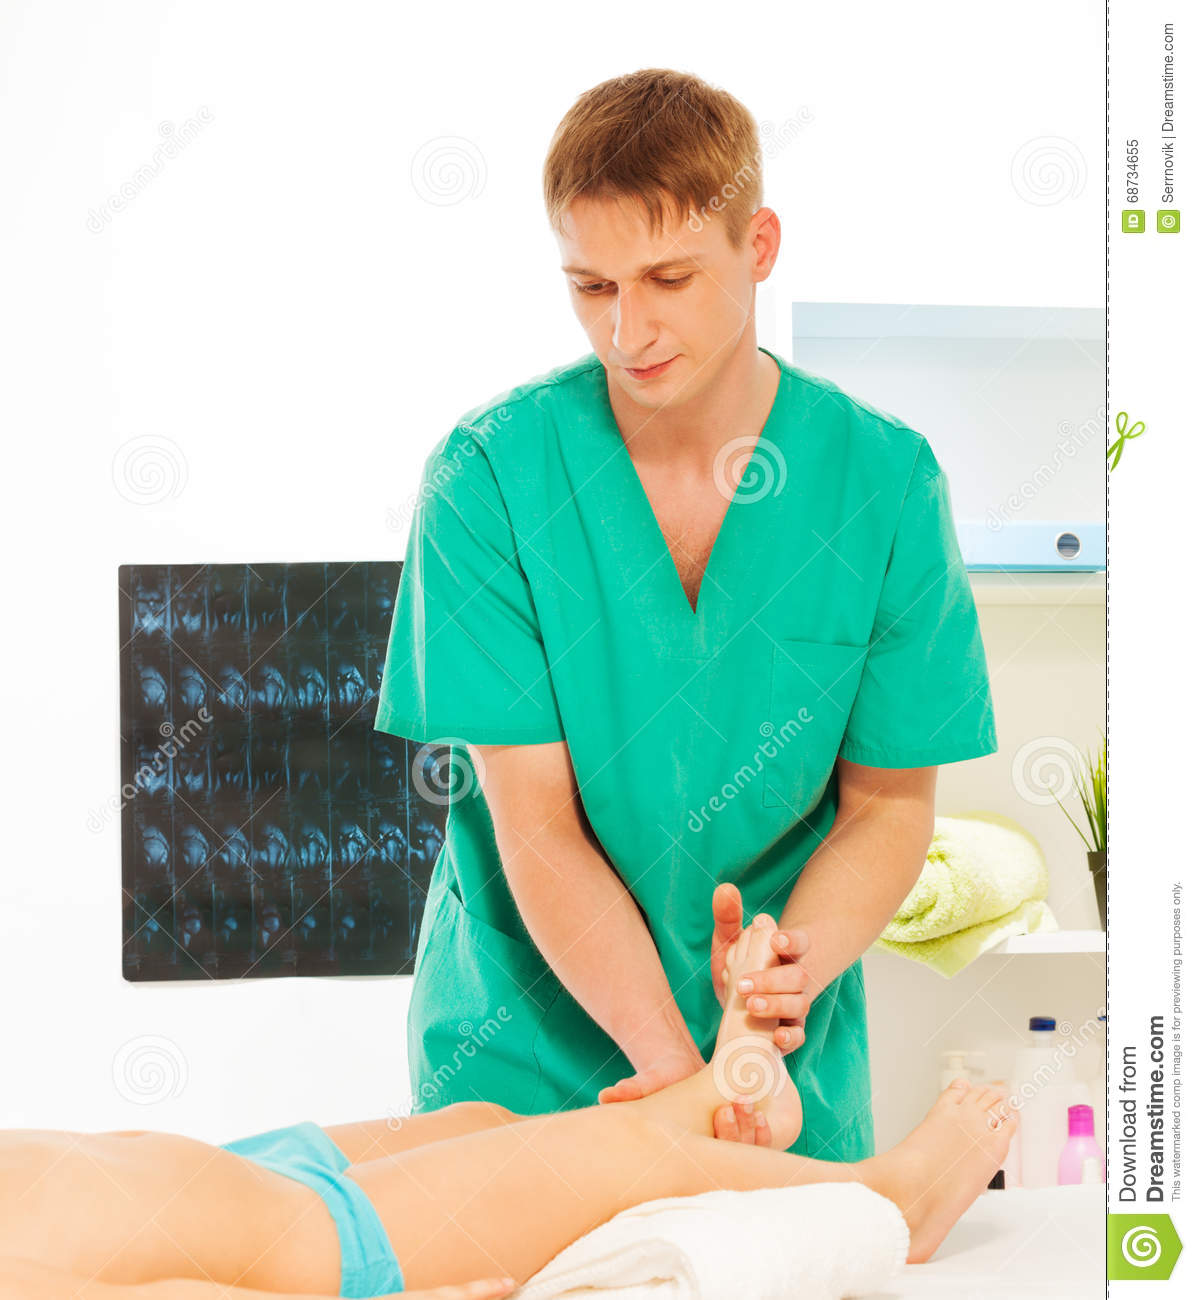 Massage Therapist Massaging Boy Foot At Cabinet Stock Image - Image: 68734655